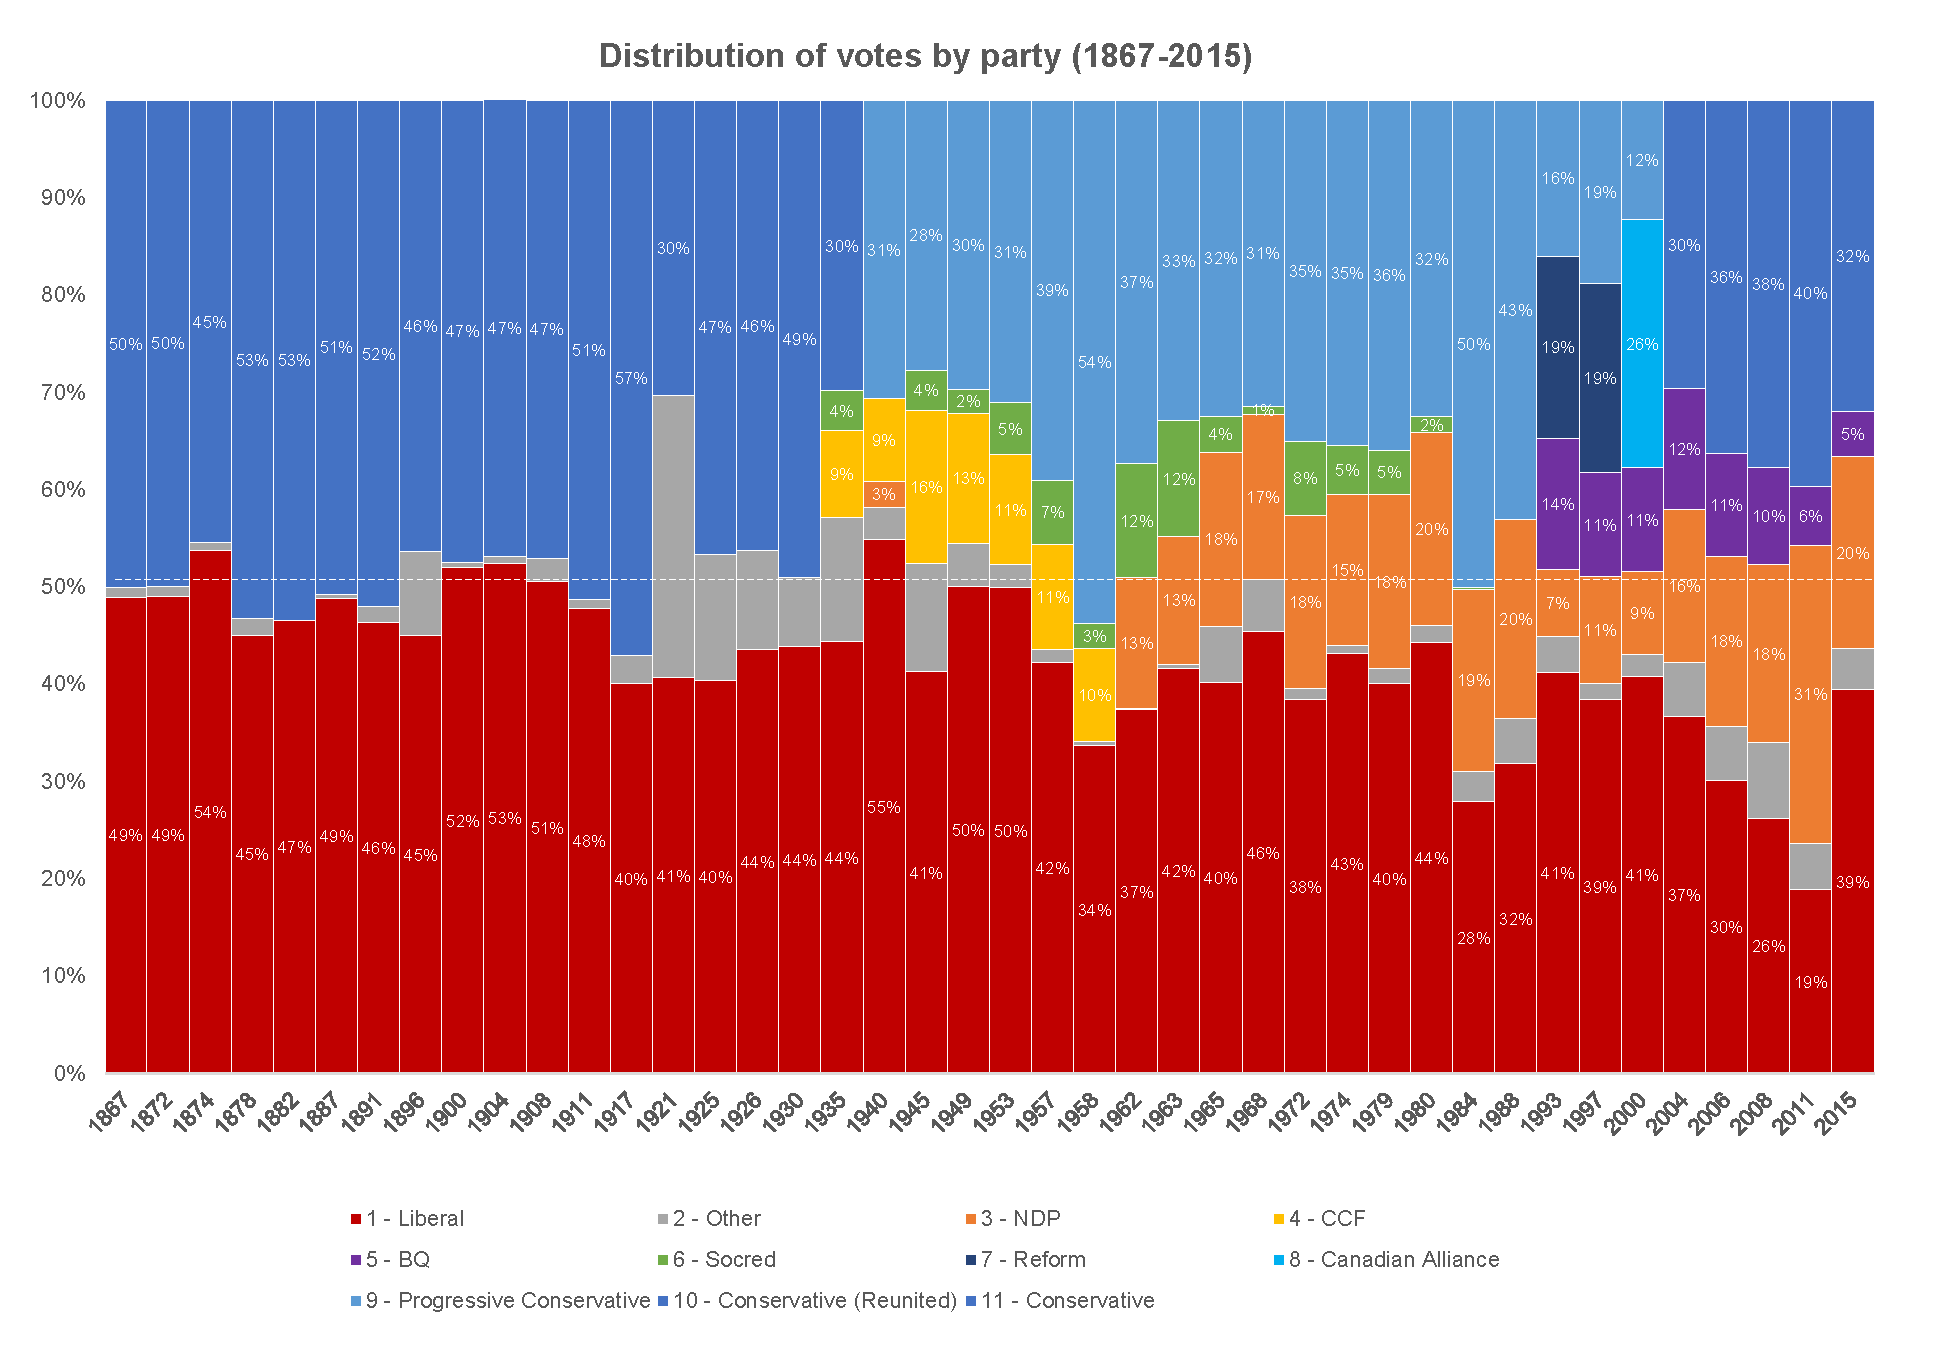 This second chart (above) shows the distribution of votes coloured by political party). There are few cases where any political party gets over 50% of the vote (these cases are mostly when there were only two major parties from 1867-1917)